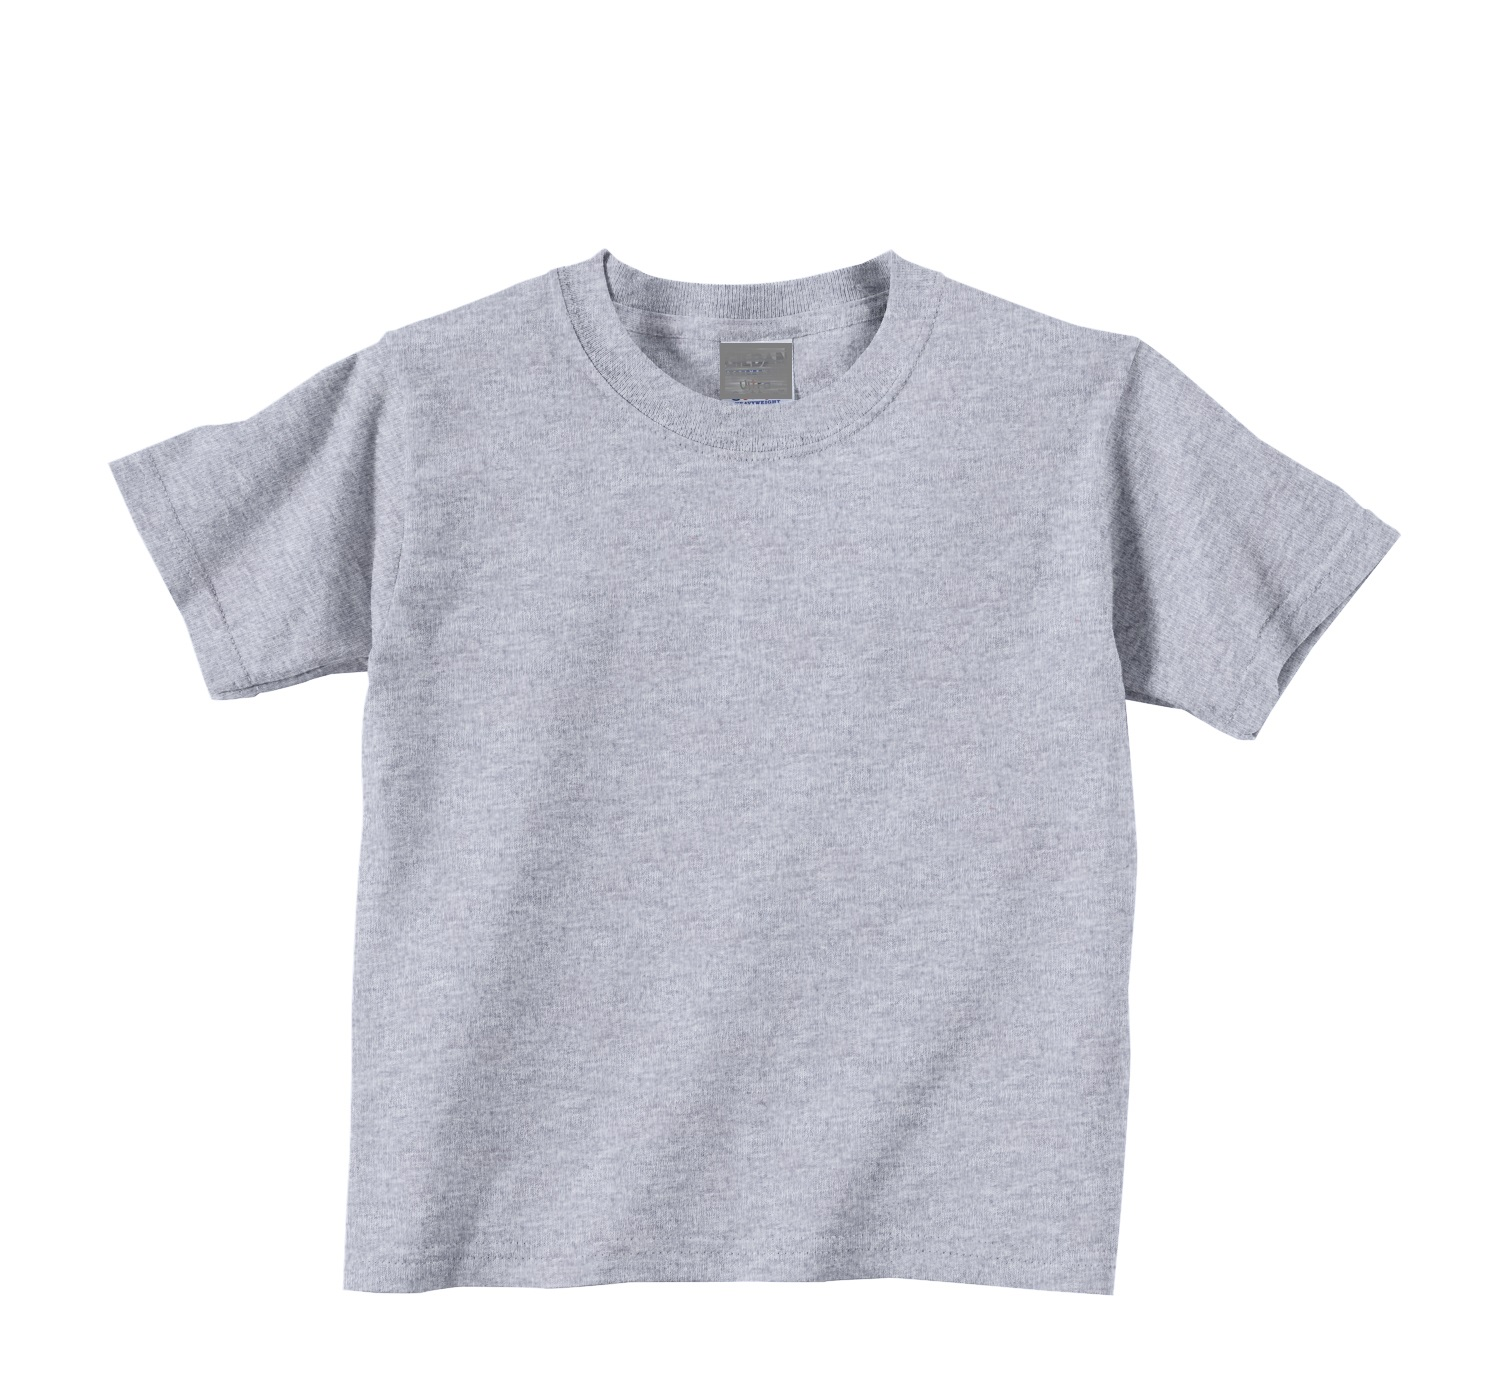 Starworld SW350 Children's Unisex T- Shirt